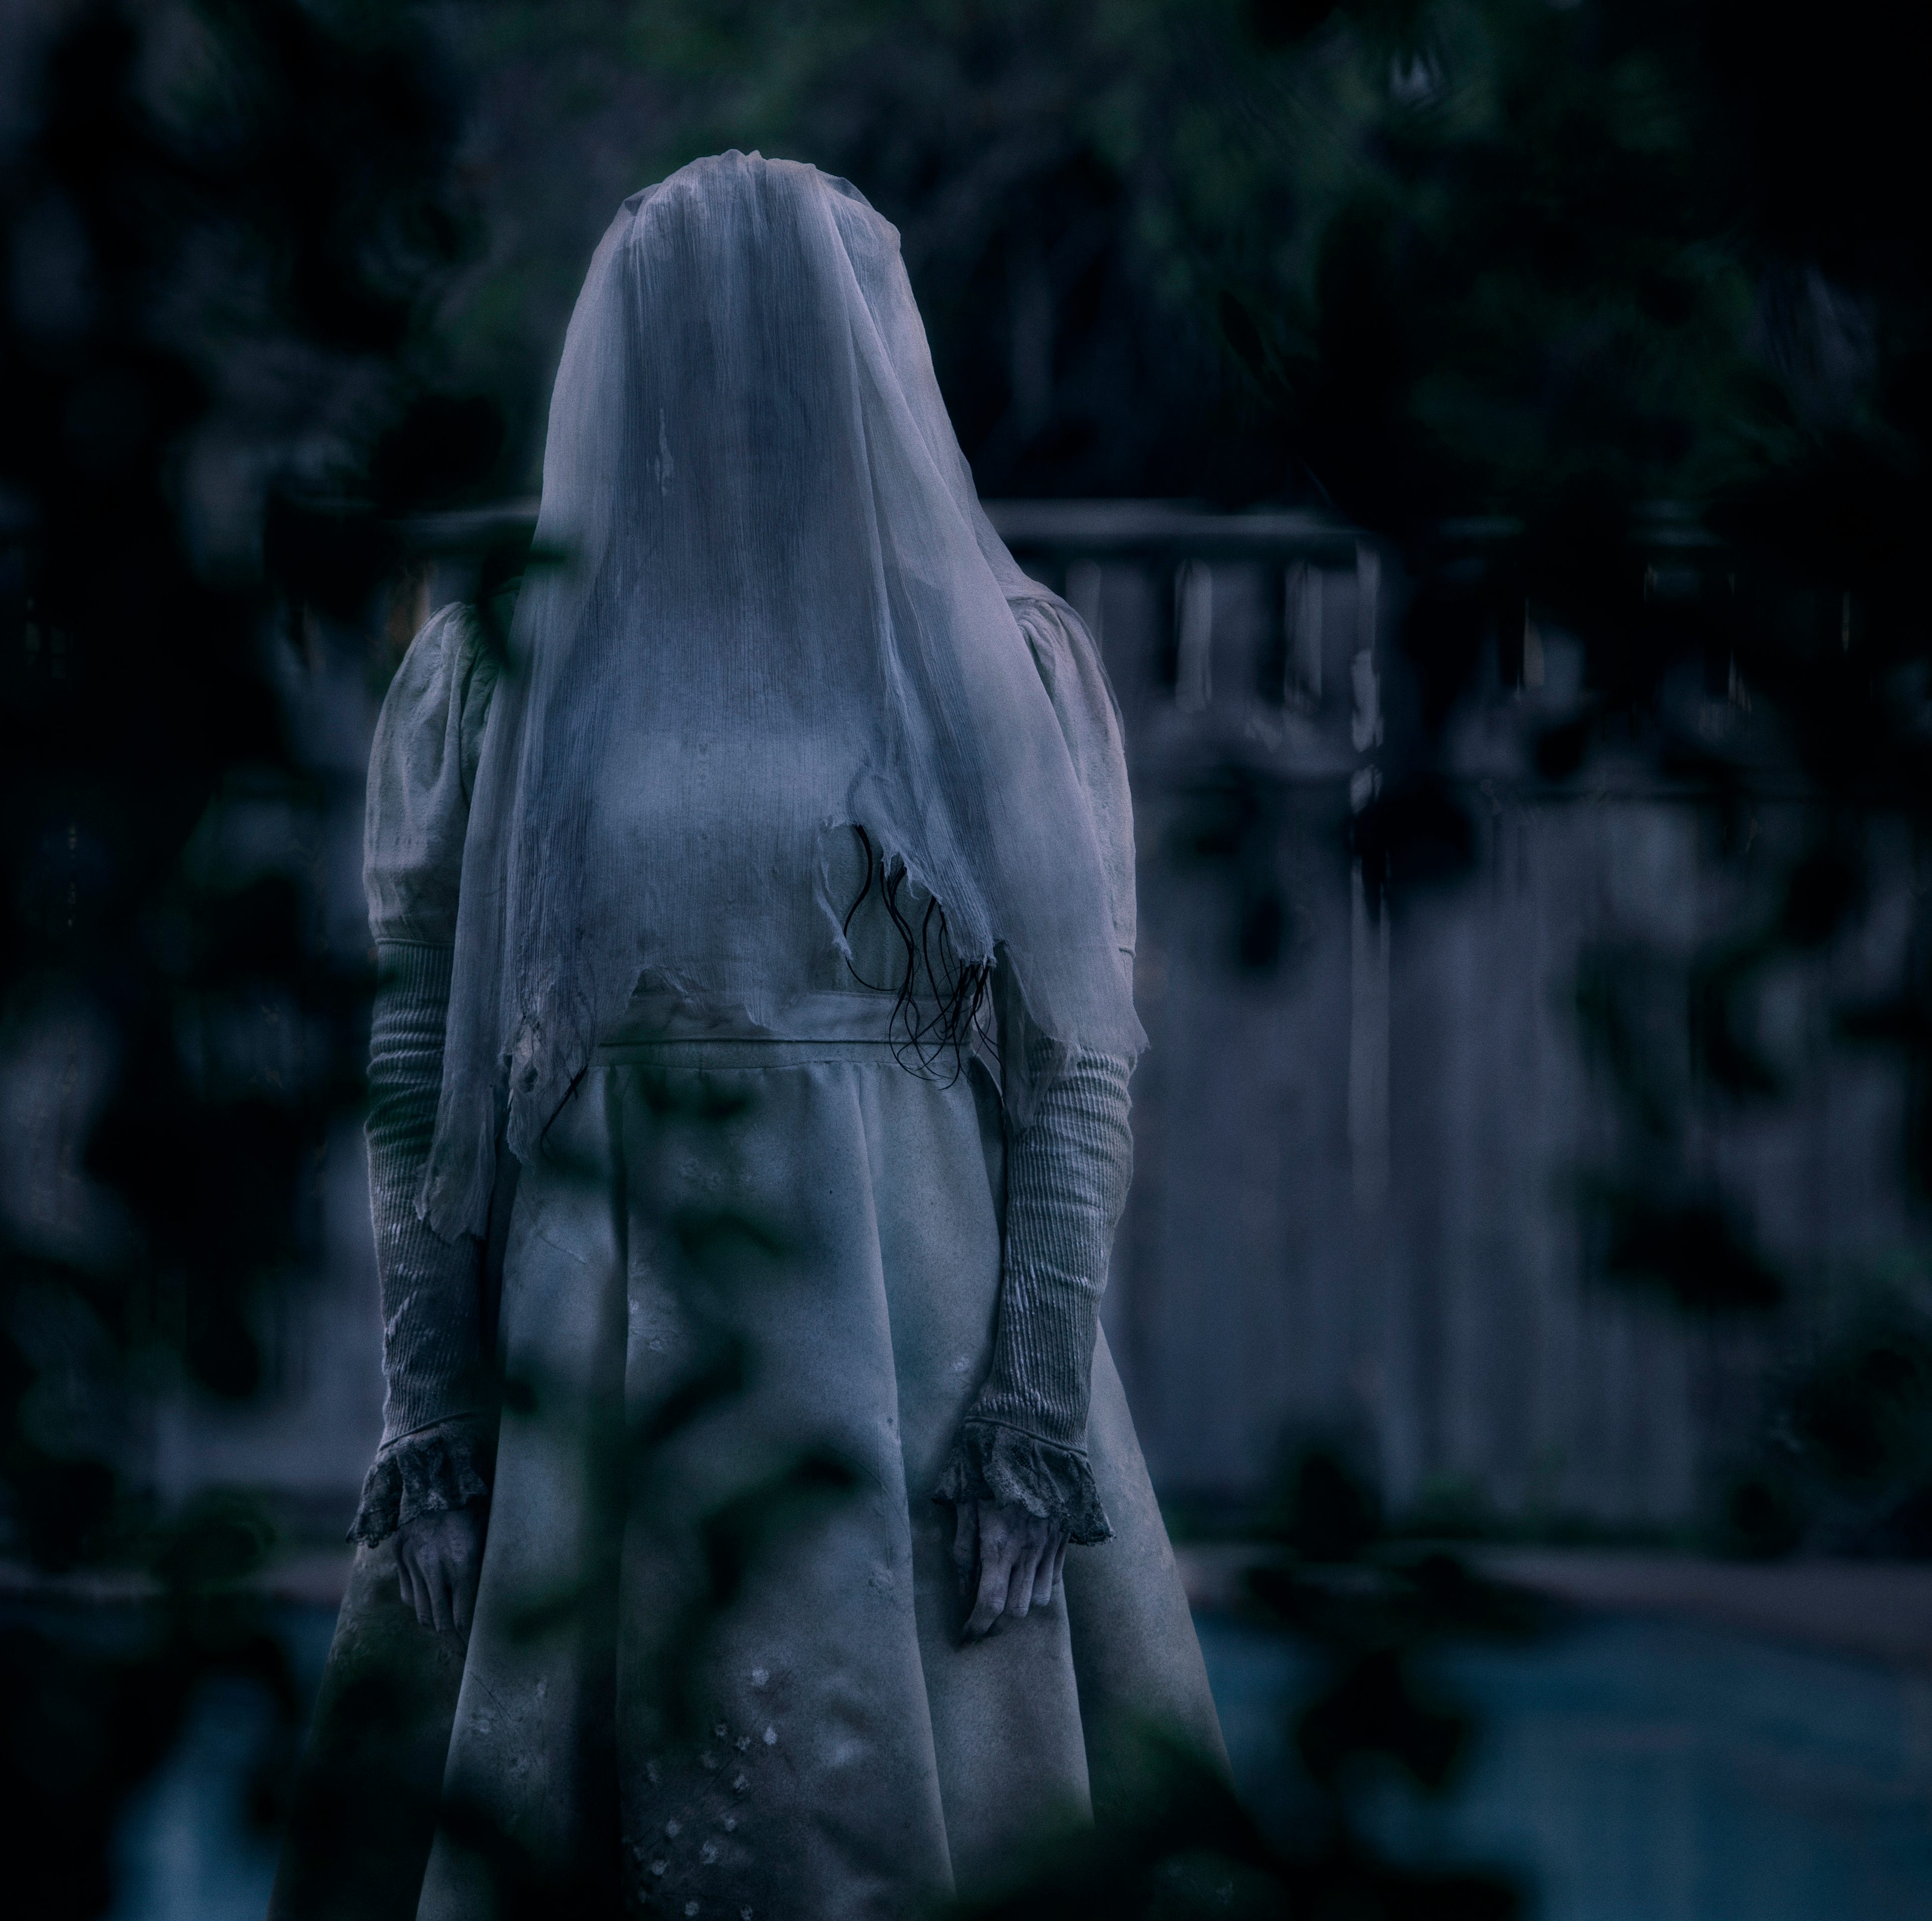 La Llorona legacy: Mexico ghost legend goes from banks of the Rio Grande to movie screen